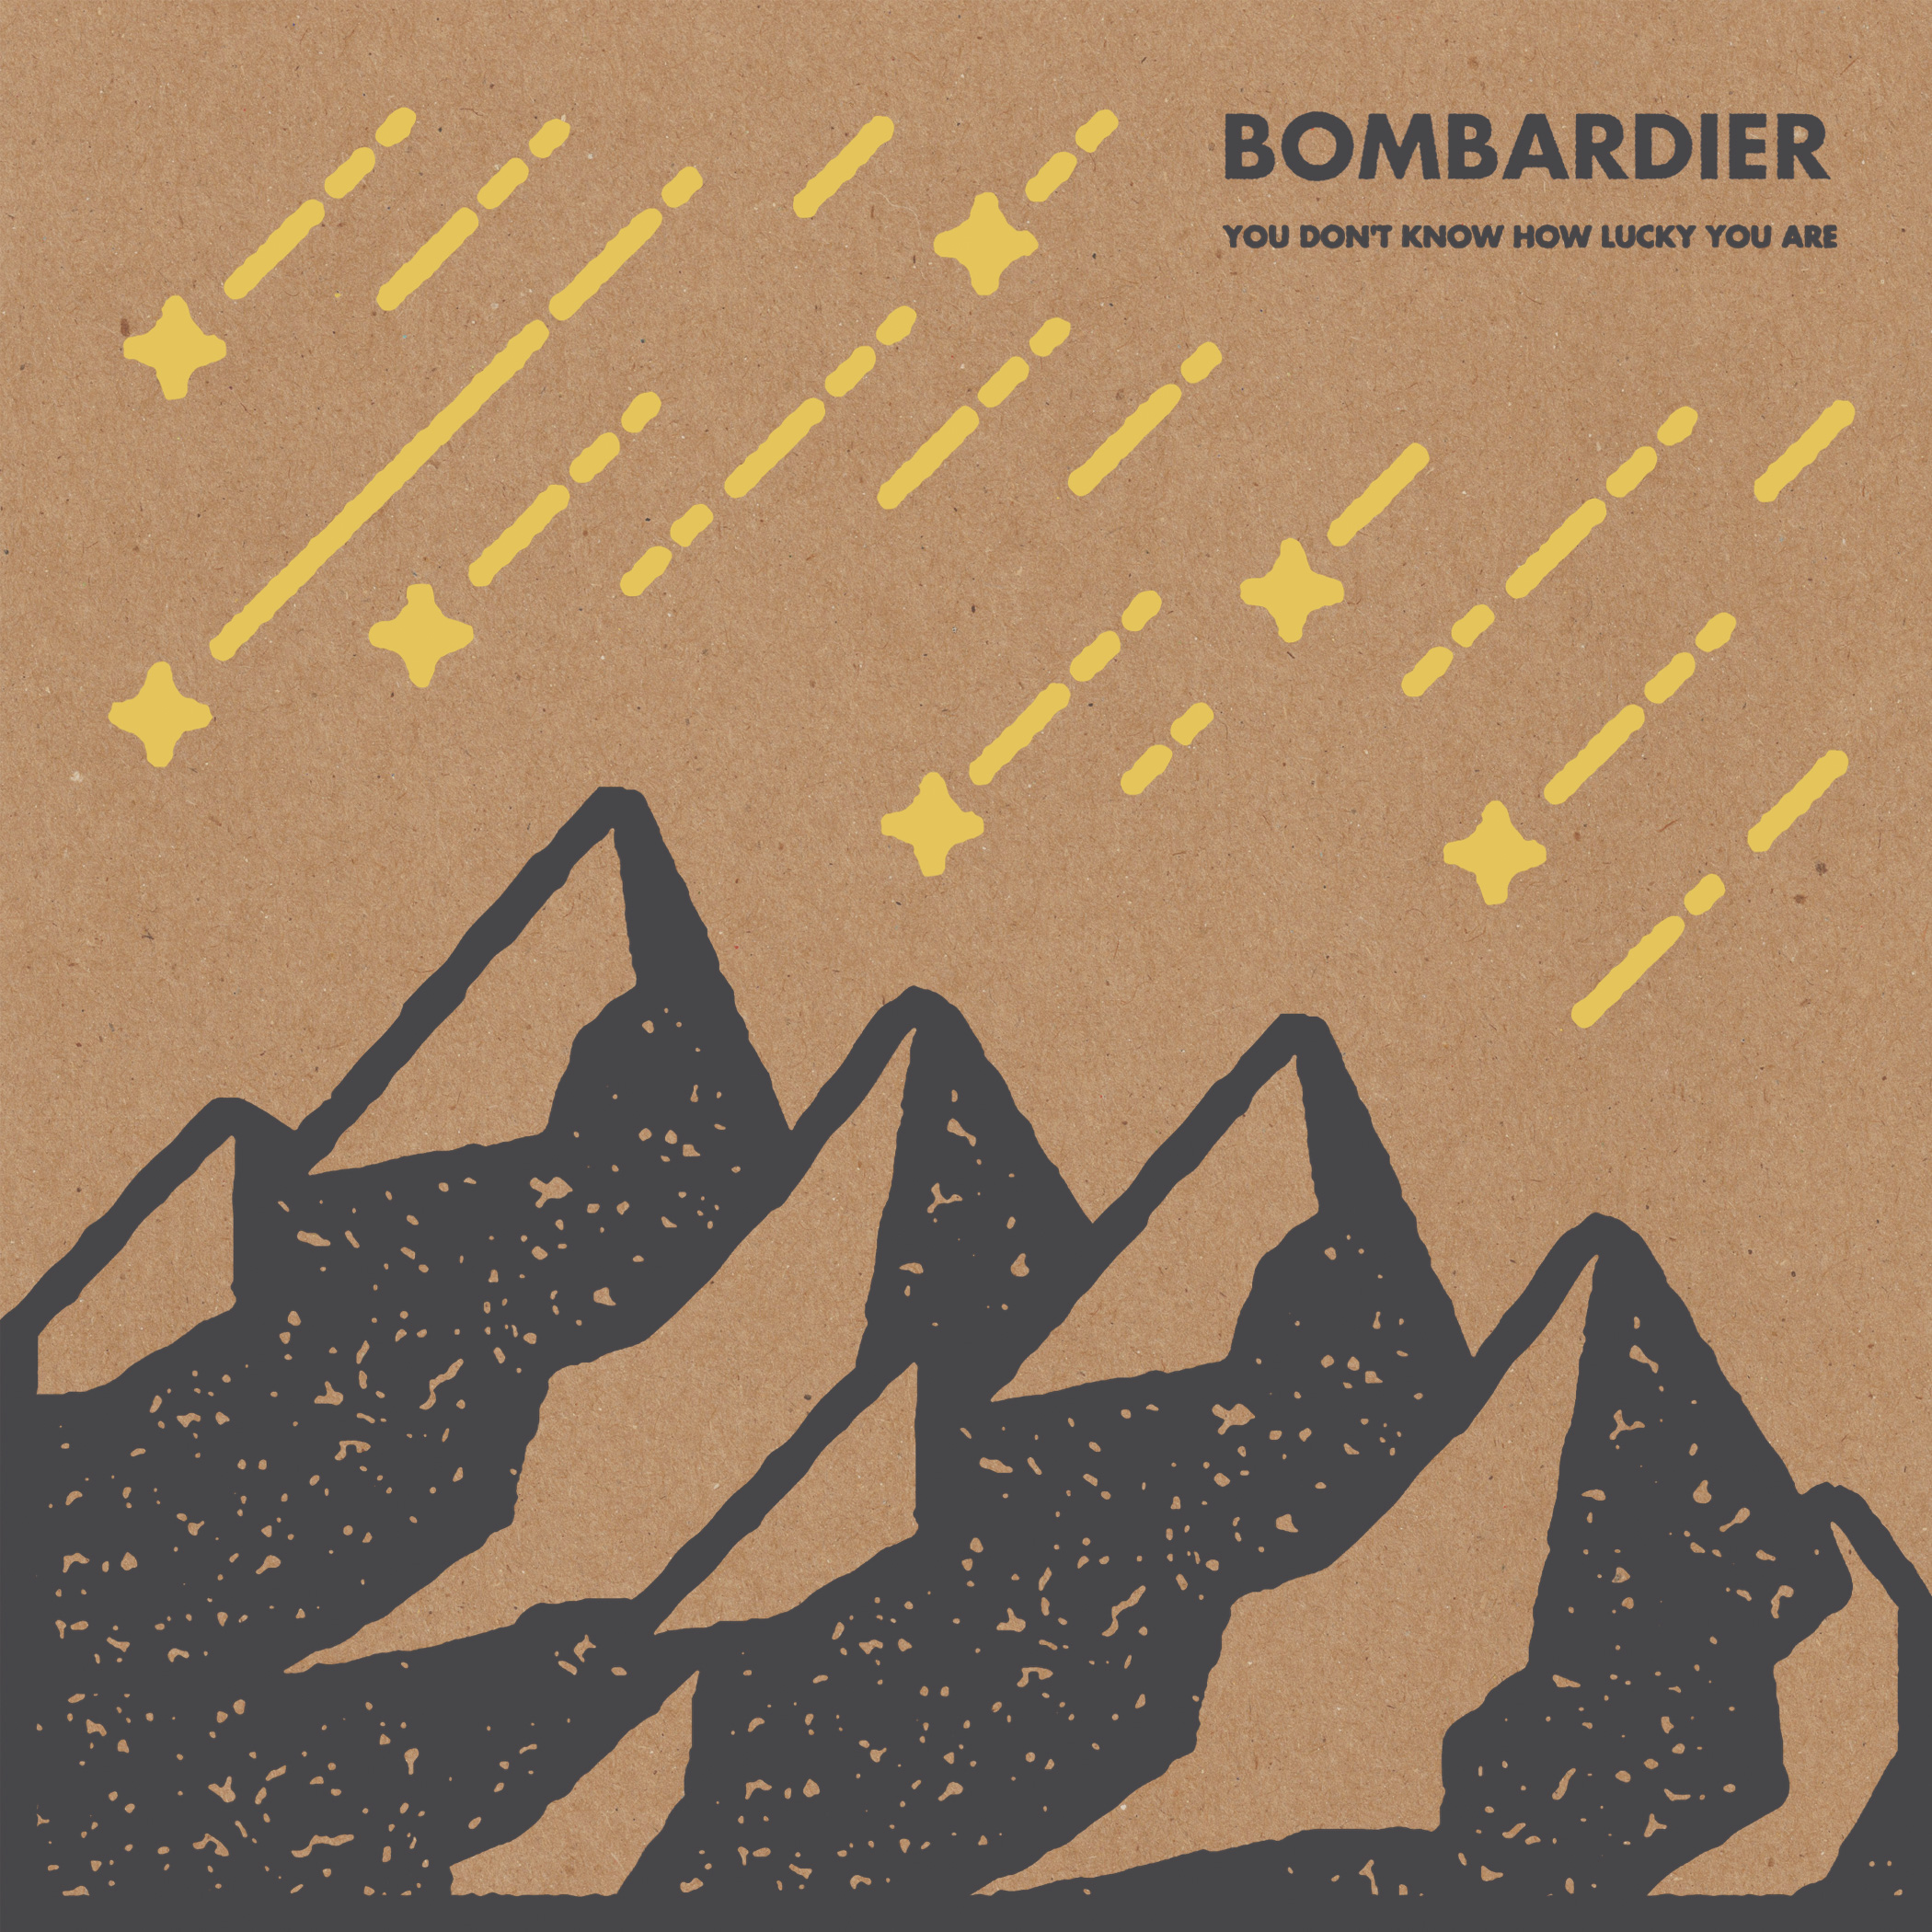 Bombardier - You Don't Know How Lucky You Are